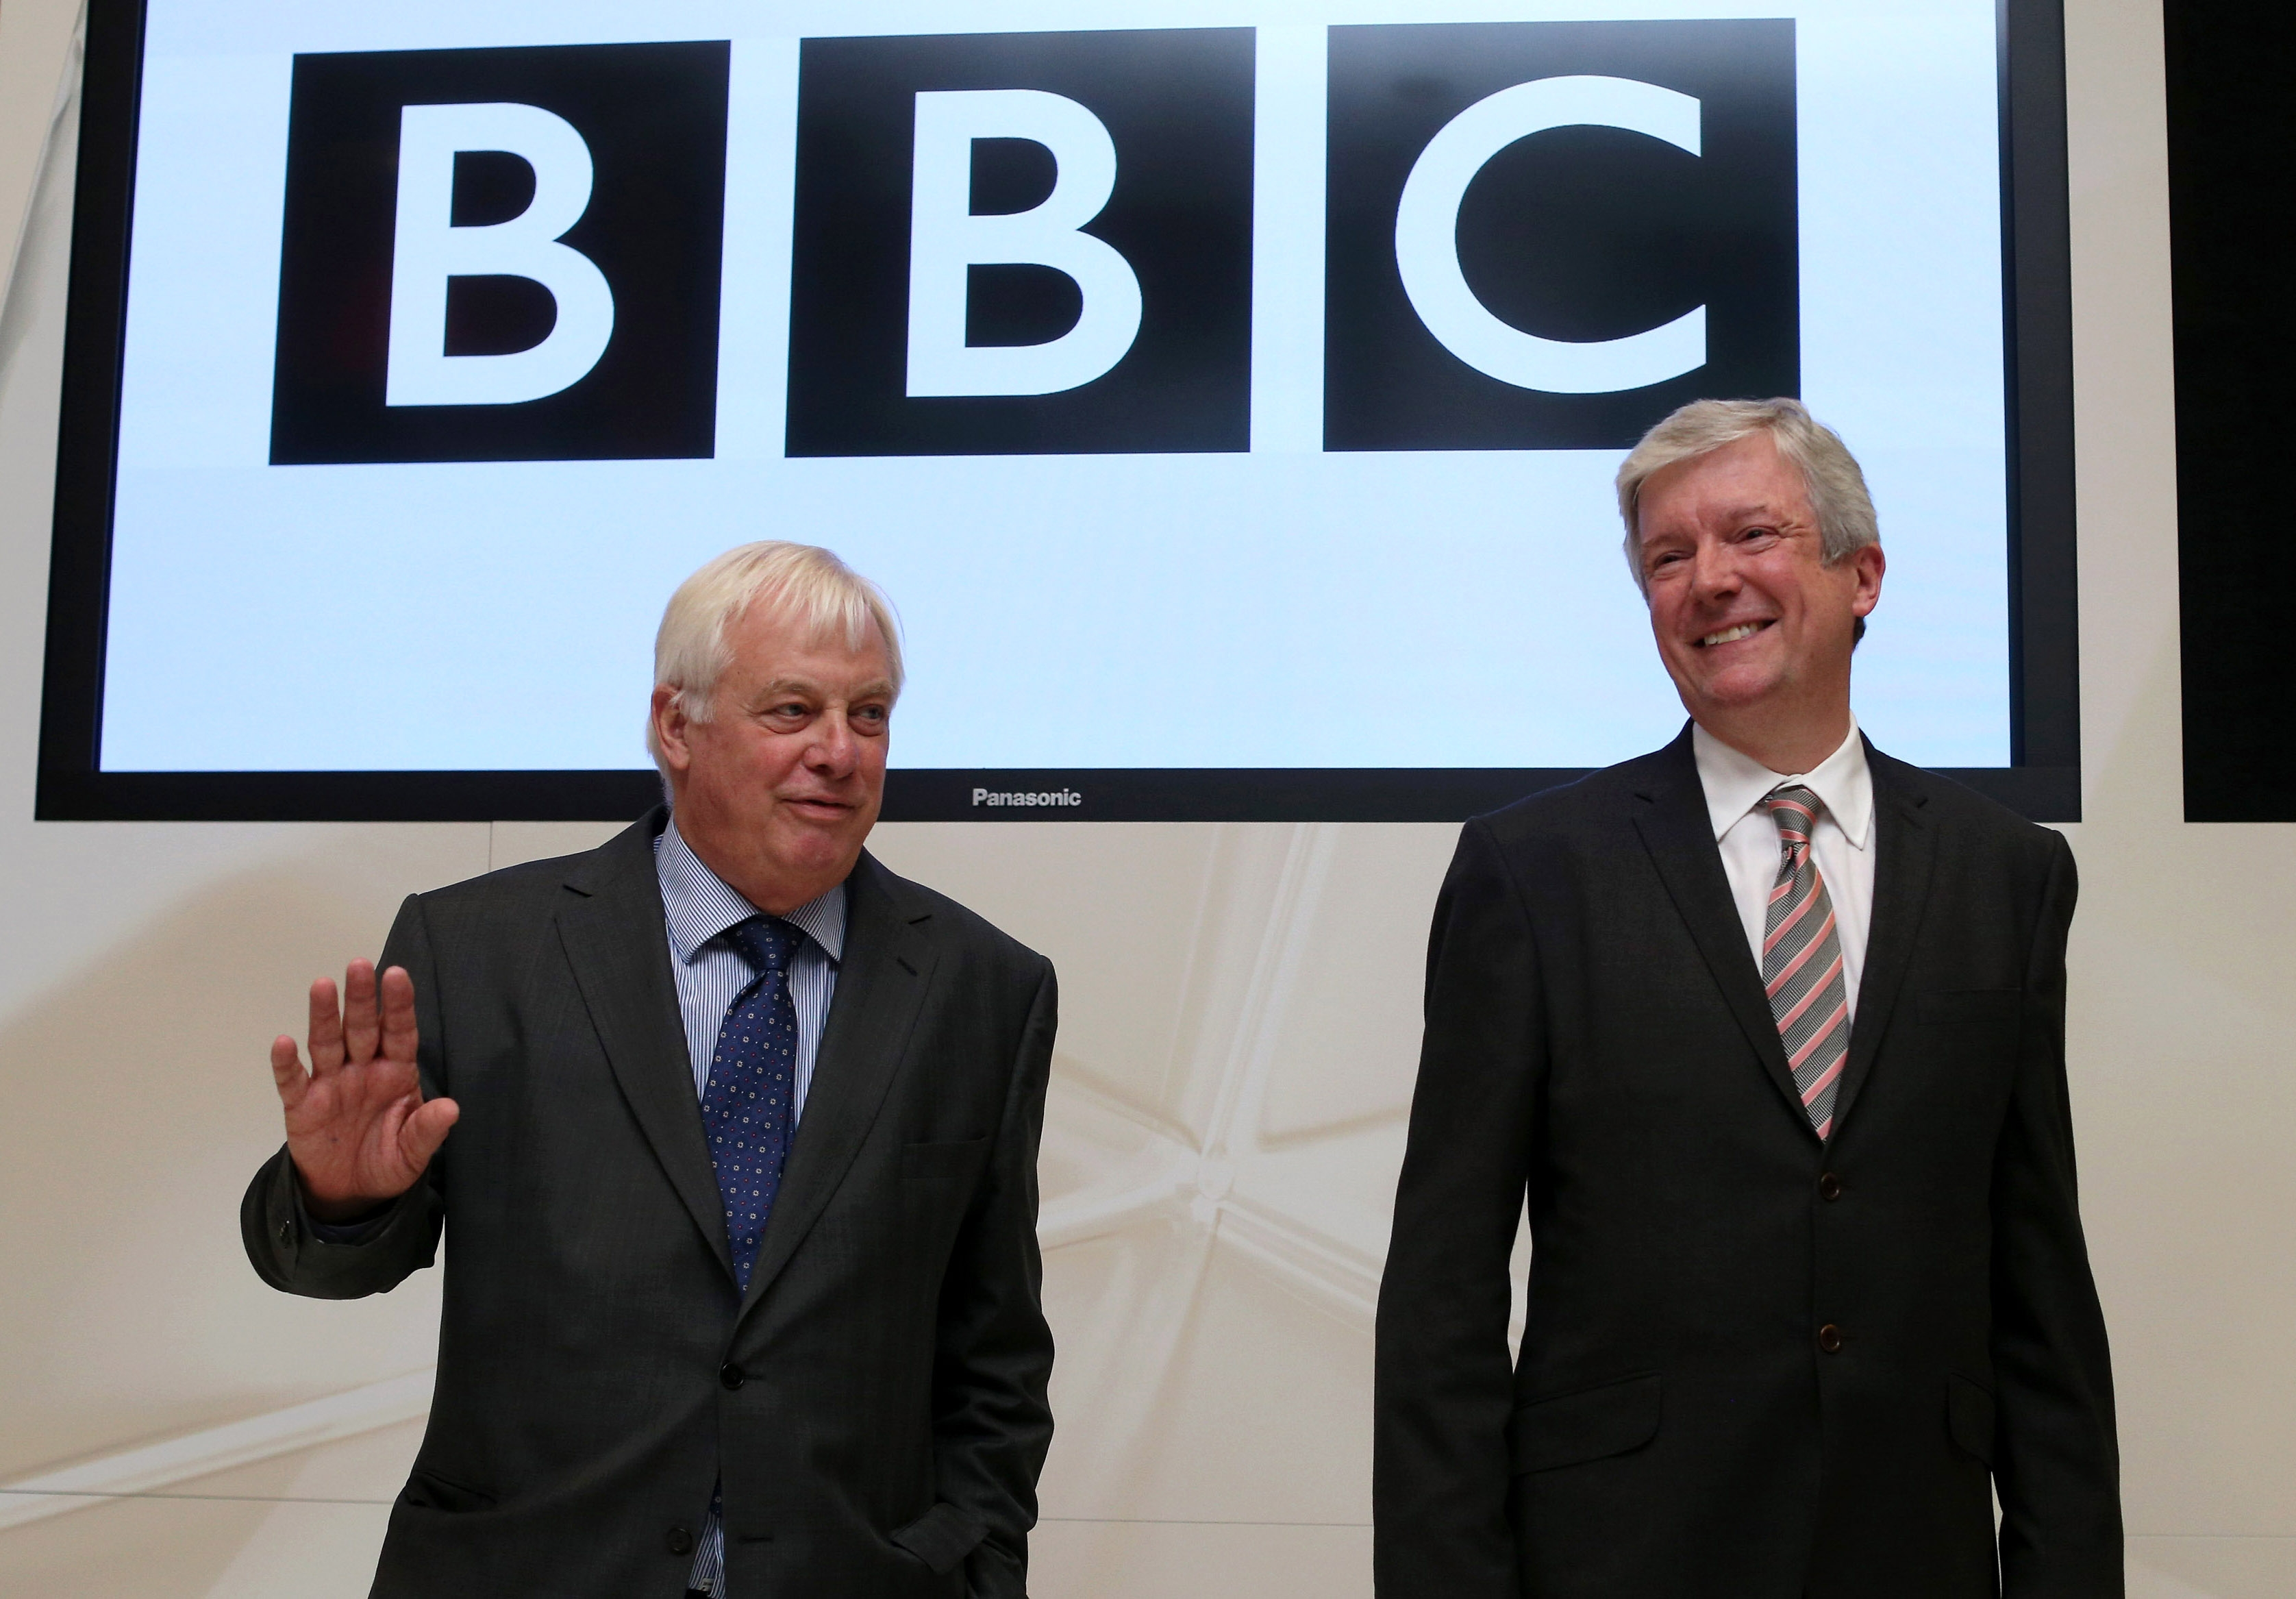 Why does the BBC so love lefty journalists?